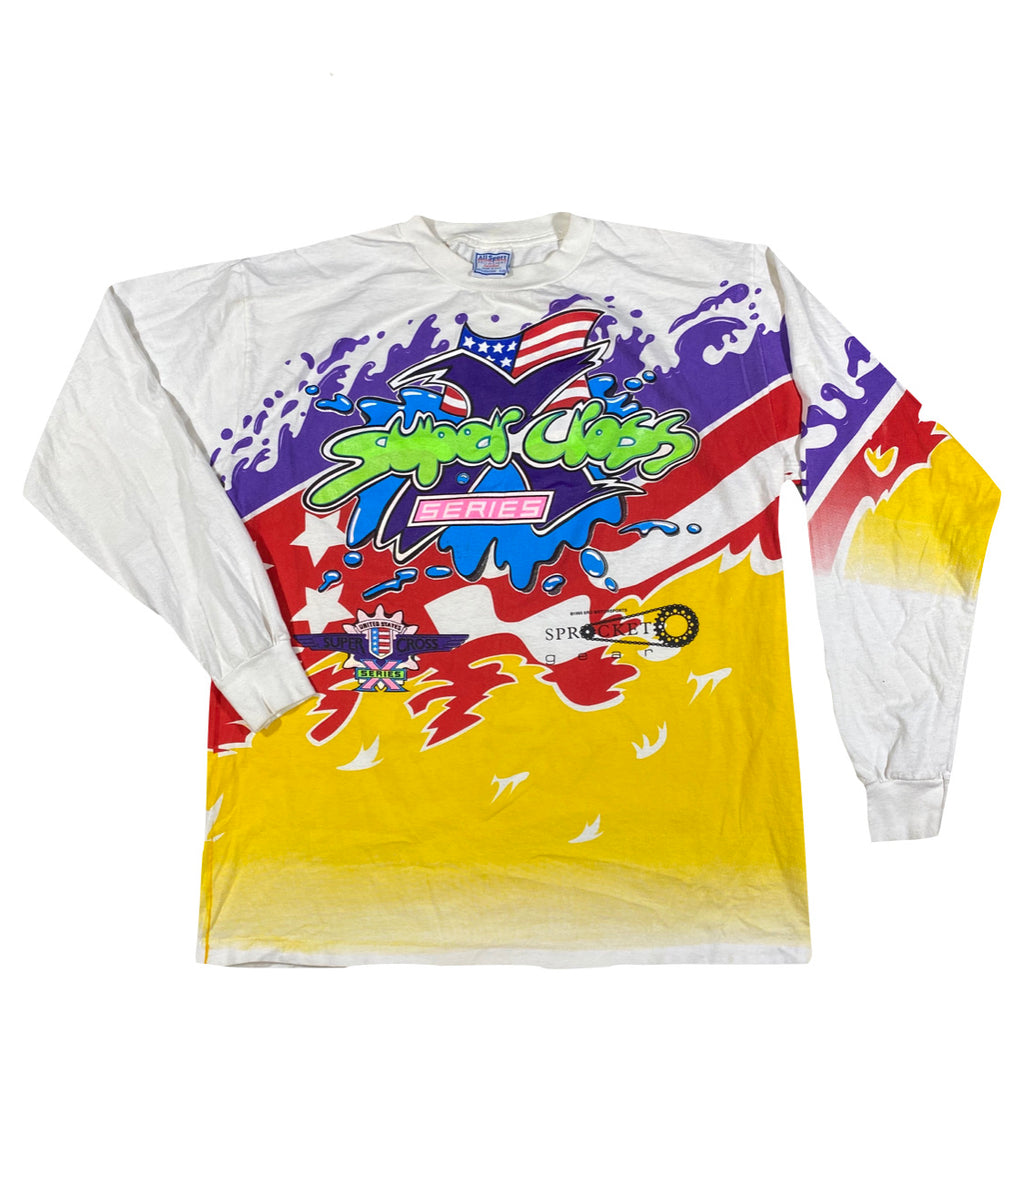 90s Super cross longsleeve. XL